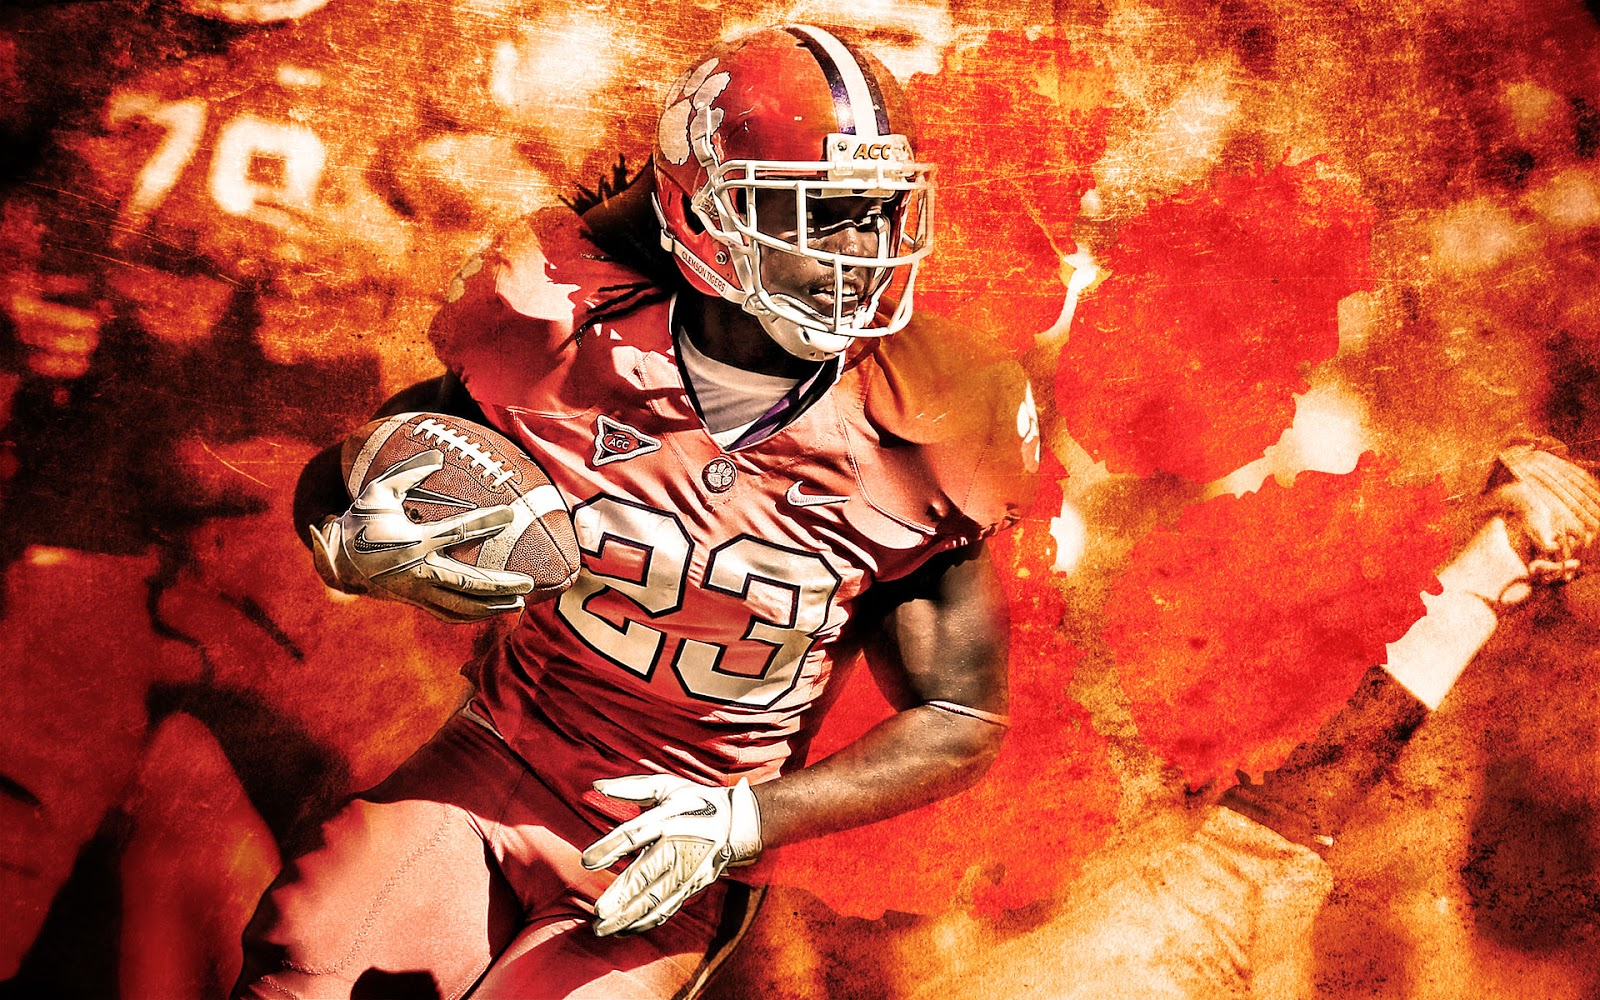 1600 x 1000 605 kb jpeg clemson football 1600 x 900 65 kb jpeg clemson 1600x1000